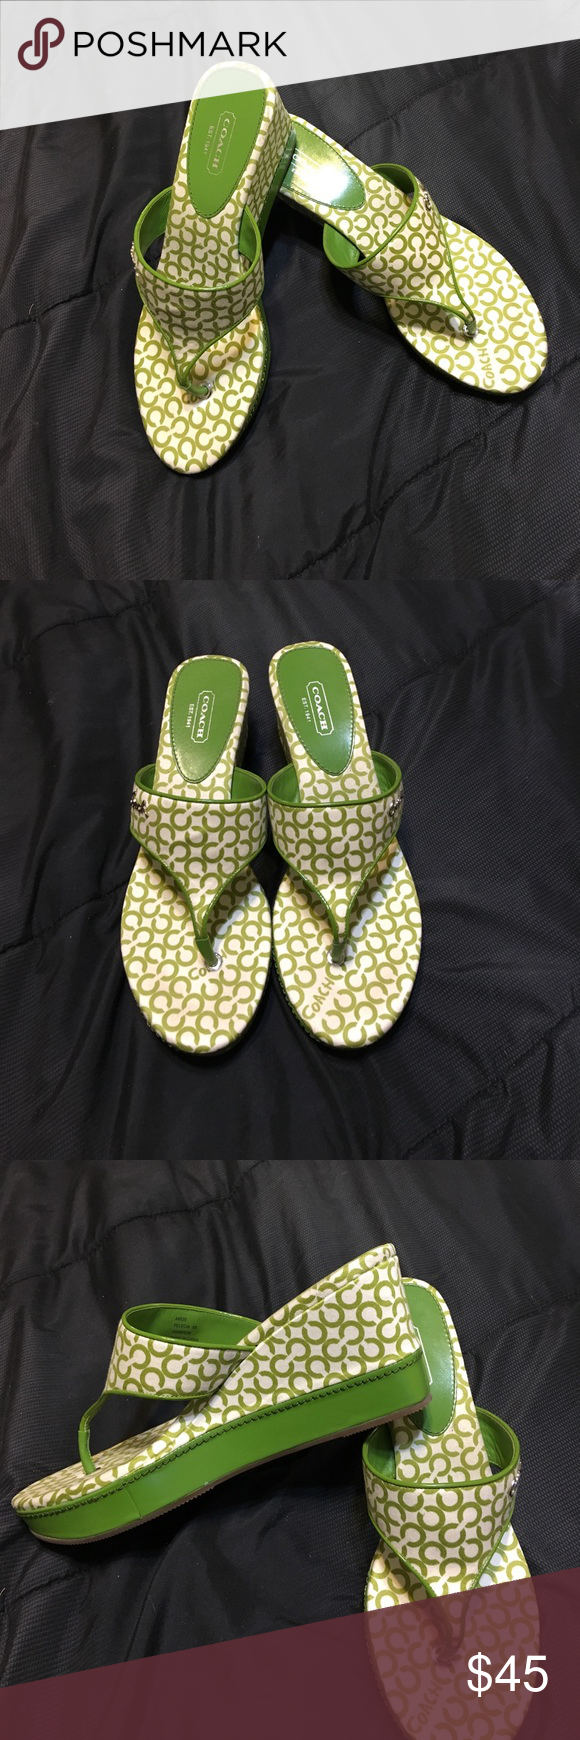 Authentic: Used Coach Sandals Authentic: Used once Coach Sandals. Color ( Green & White )  Pet free and Smoke free home. Please No LowBall Offers 🙂 Coach Shoes Sandals